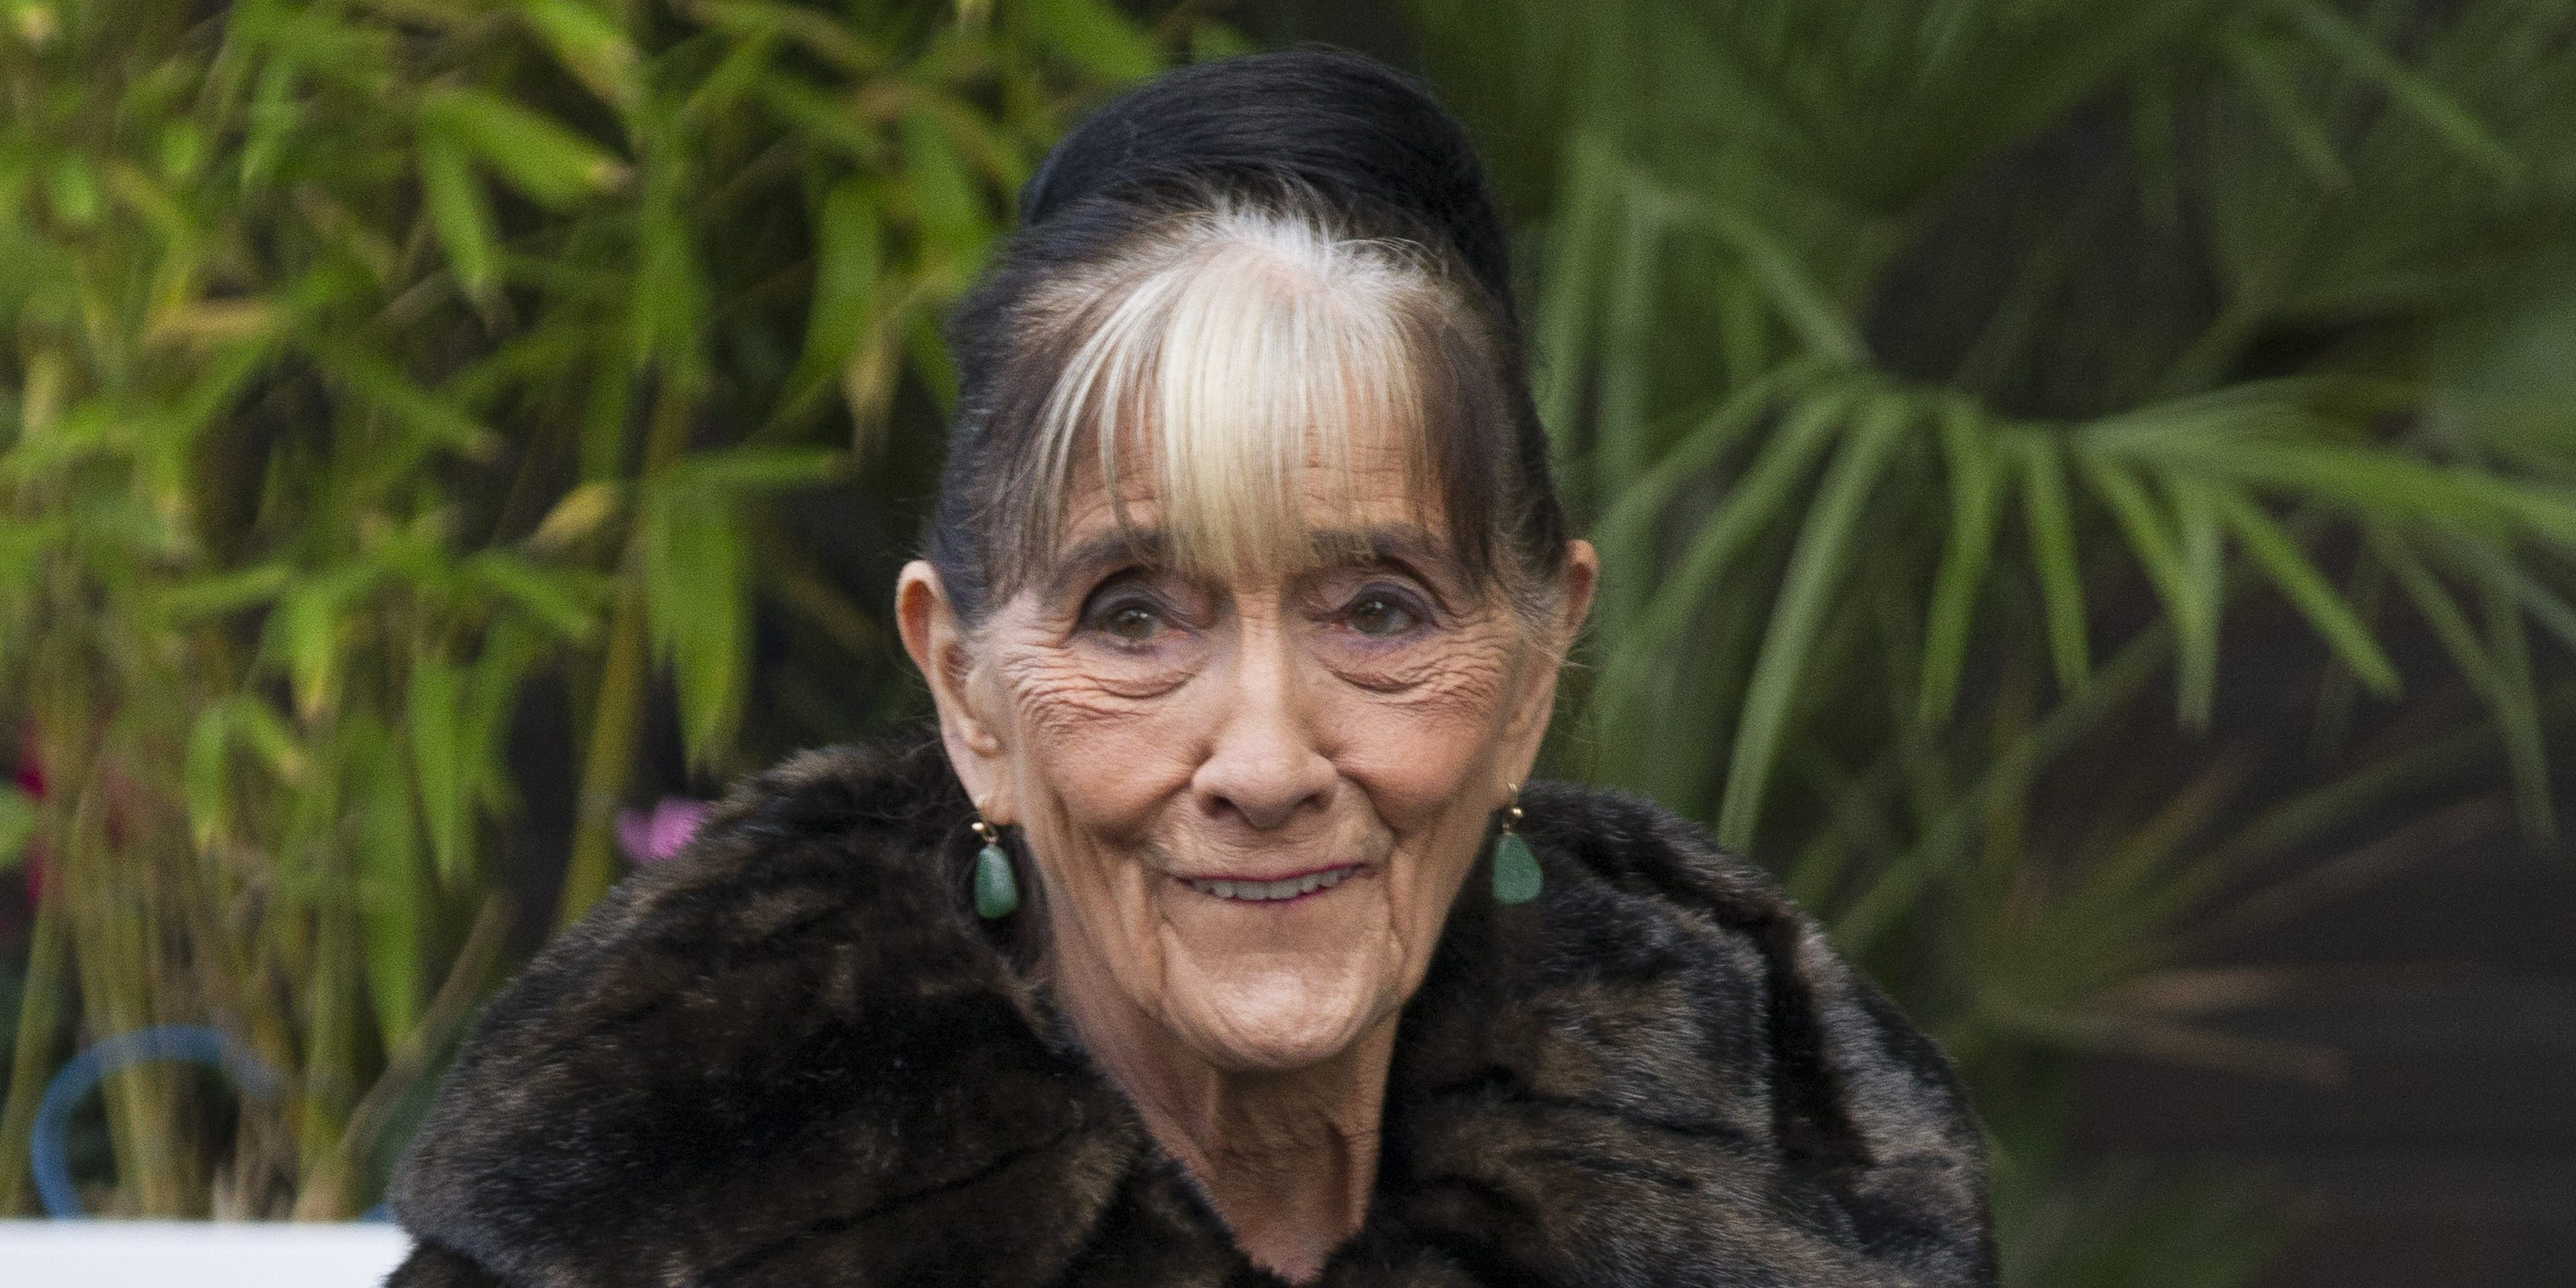 EastEnders star June brown signs new deal